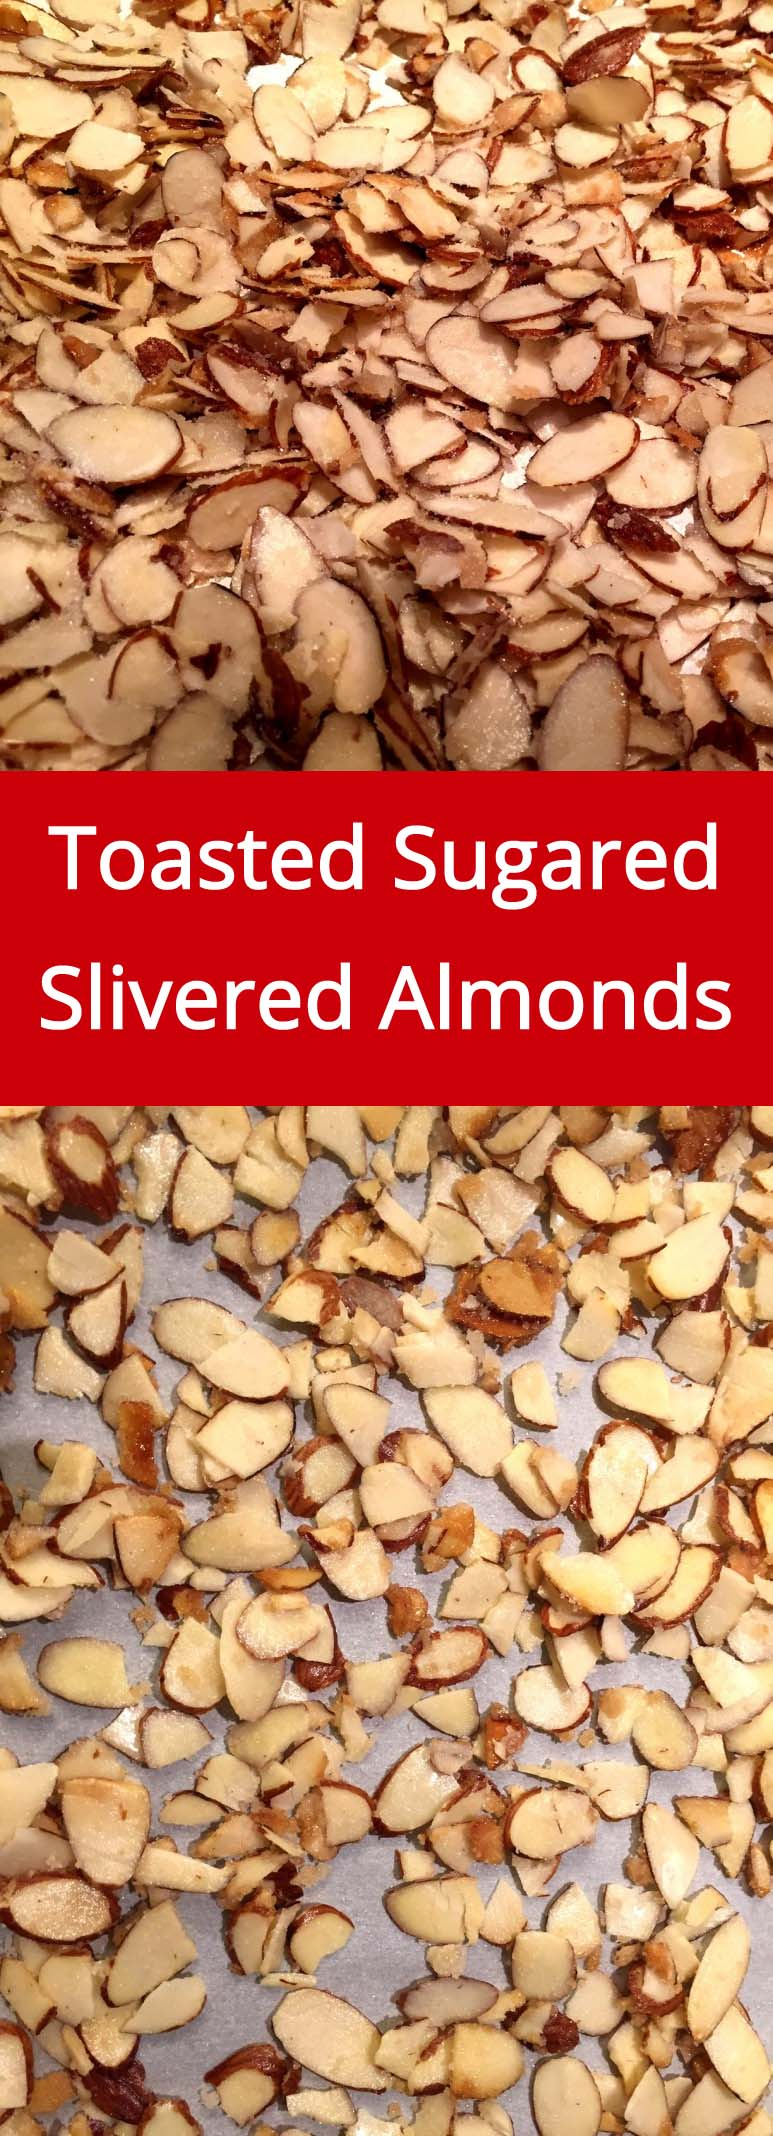 Toasted Sugared Slivered Almonds Recipe - they are so crunchy and addictive!  Perfect as a salad topping!